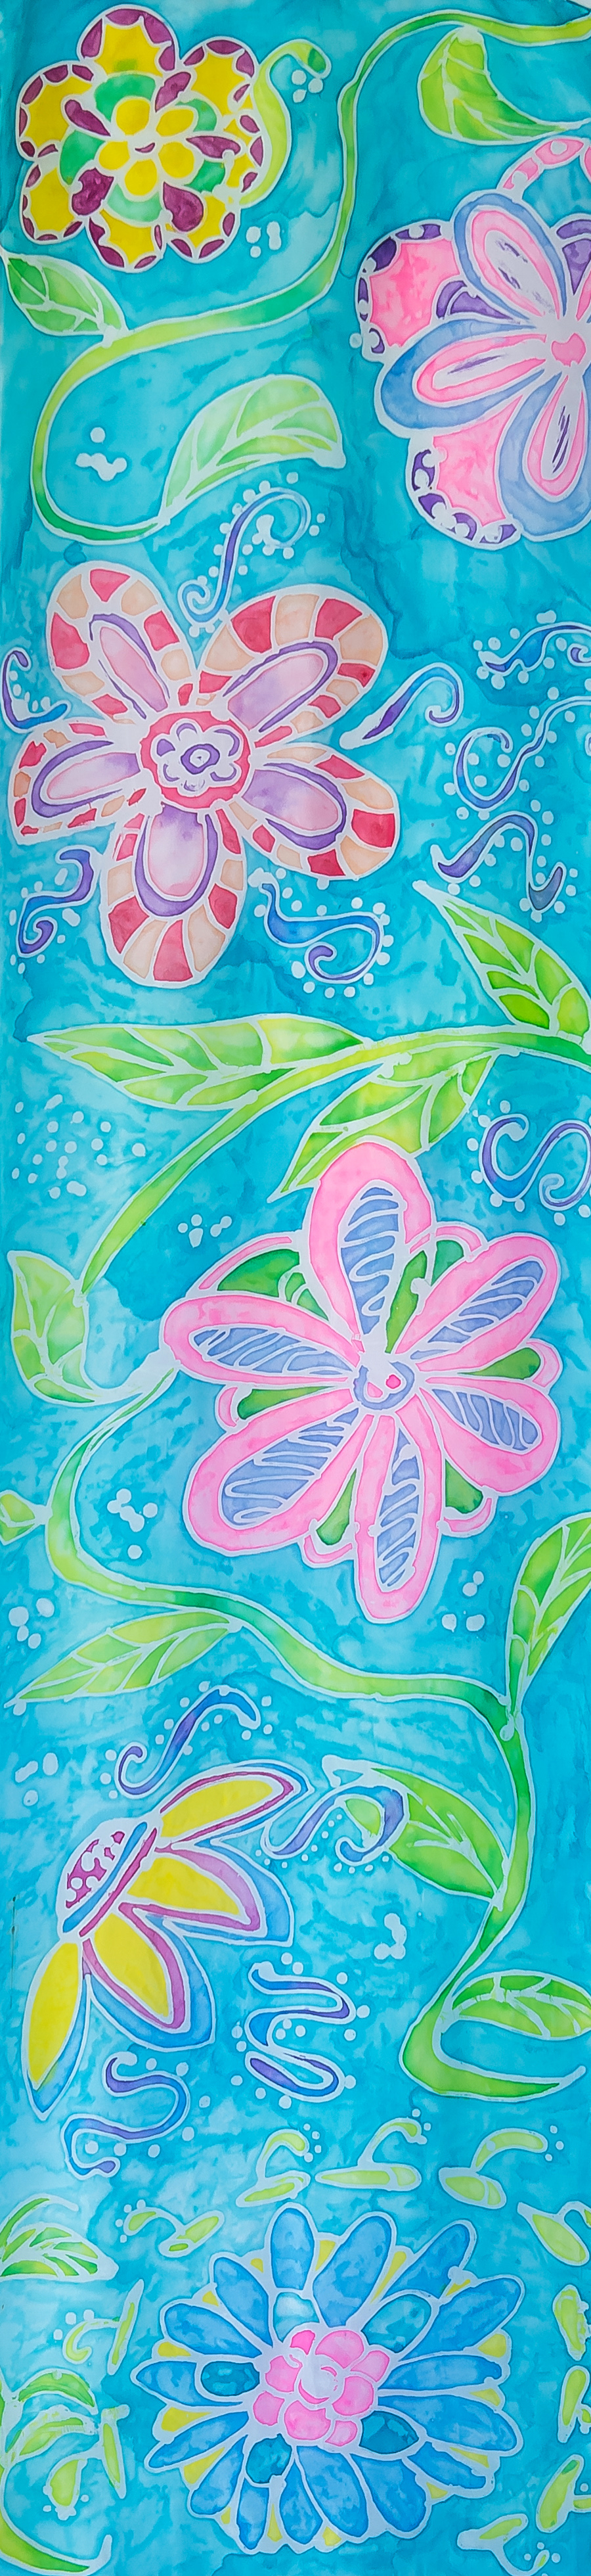 "Whimsical Flowers 14""x54"" $75"